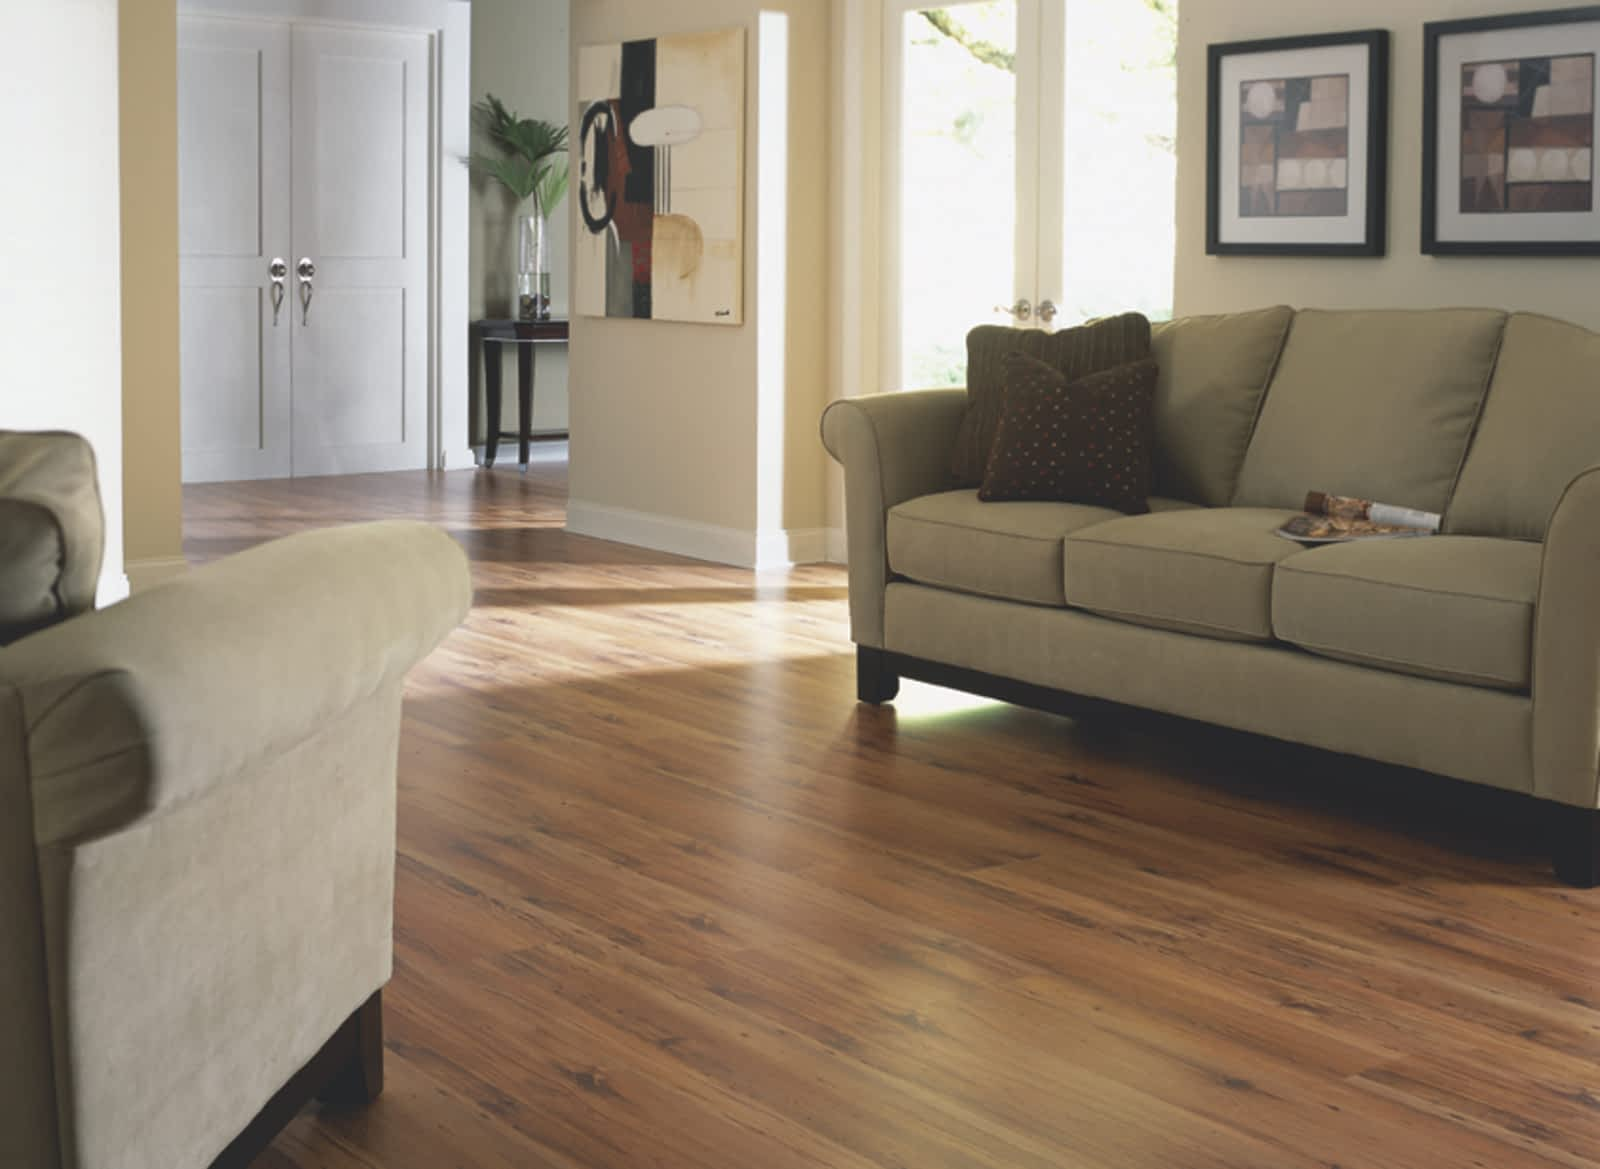 or home eglinton nothing near quickly toronto a enhances floors of store commerical residential stores office as the look hardwood carpets flooring me